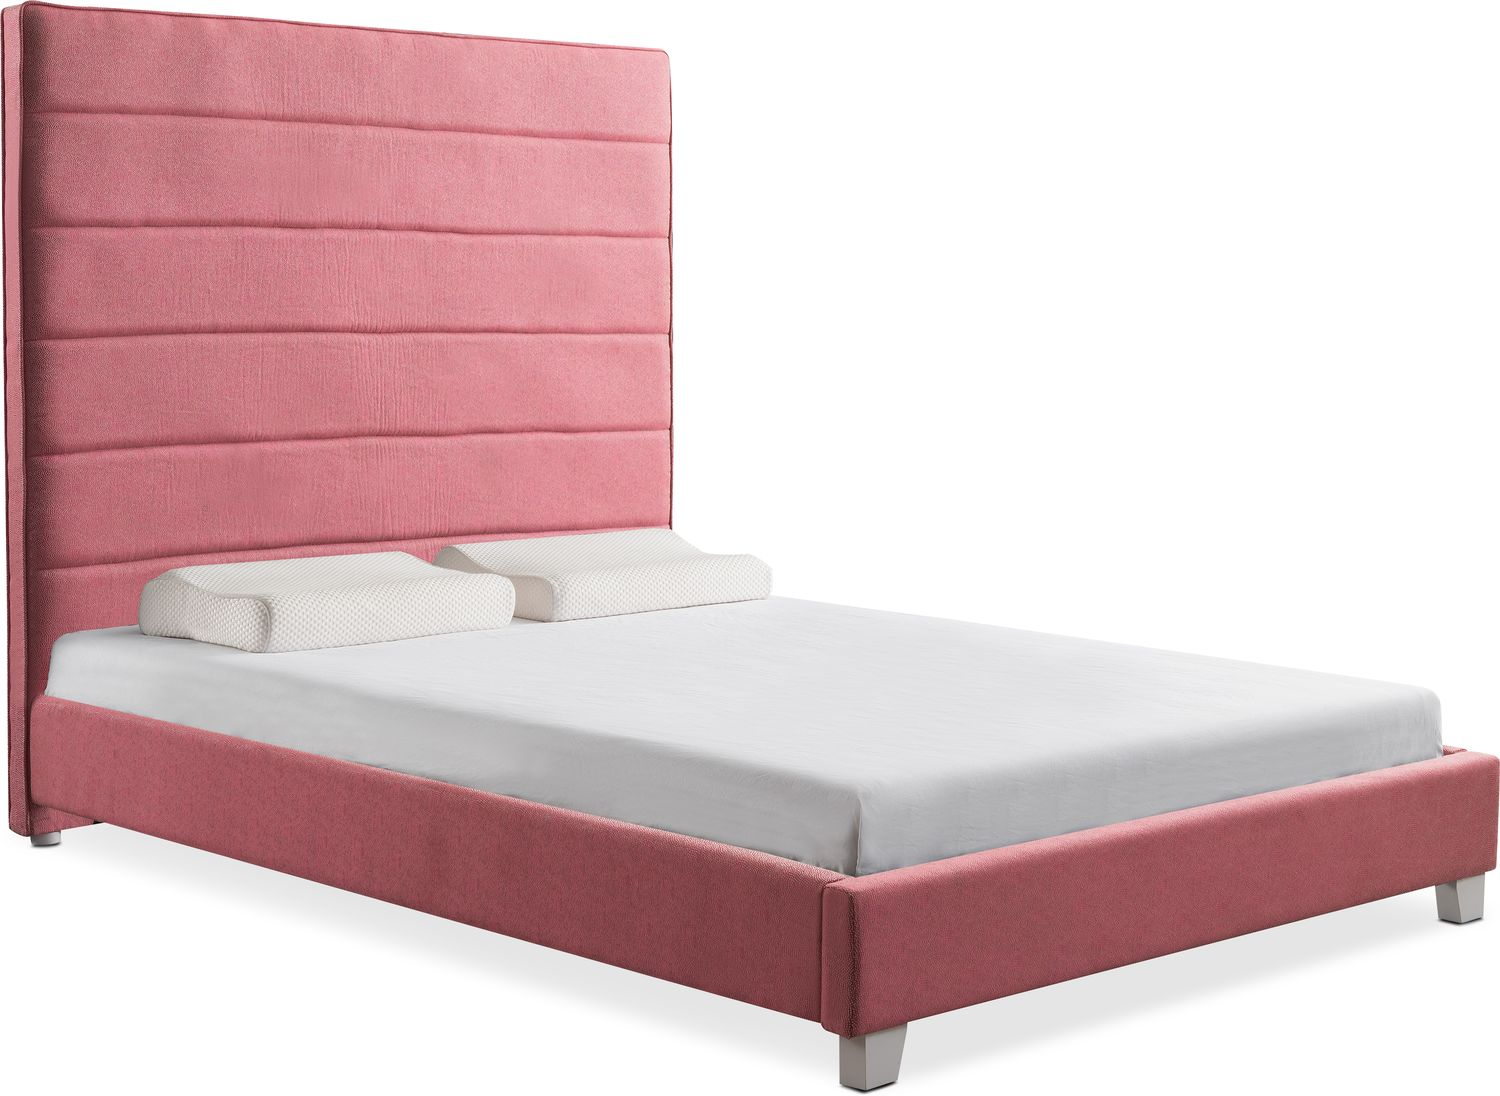 Brighton Upholstered Bed | American Signature Furniture